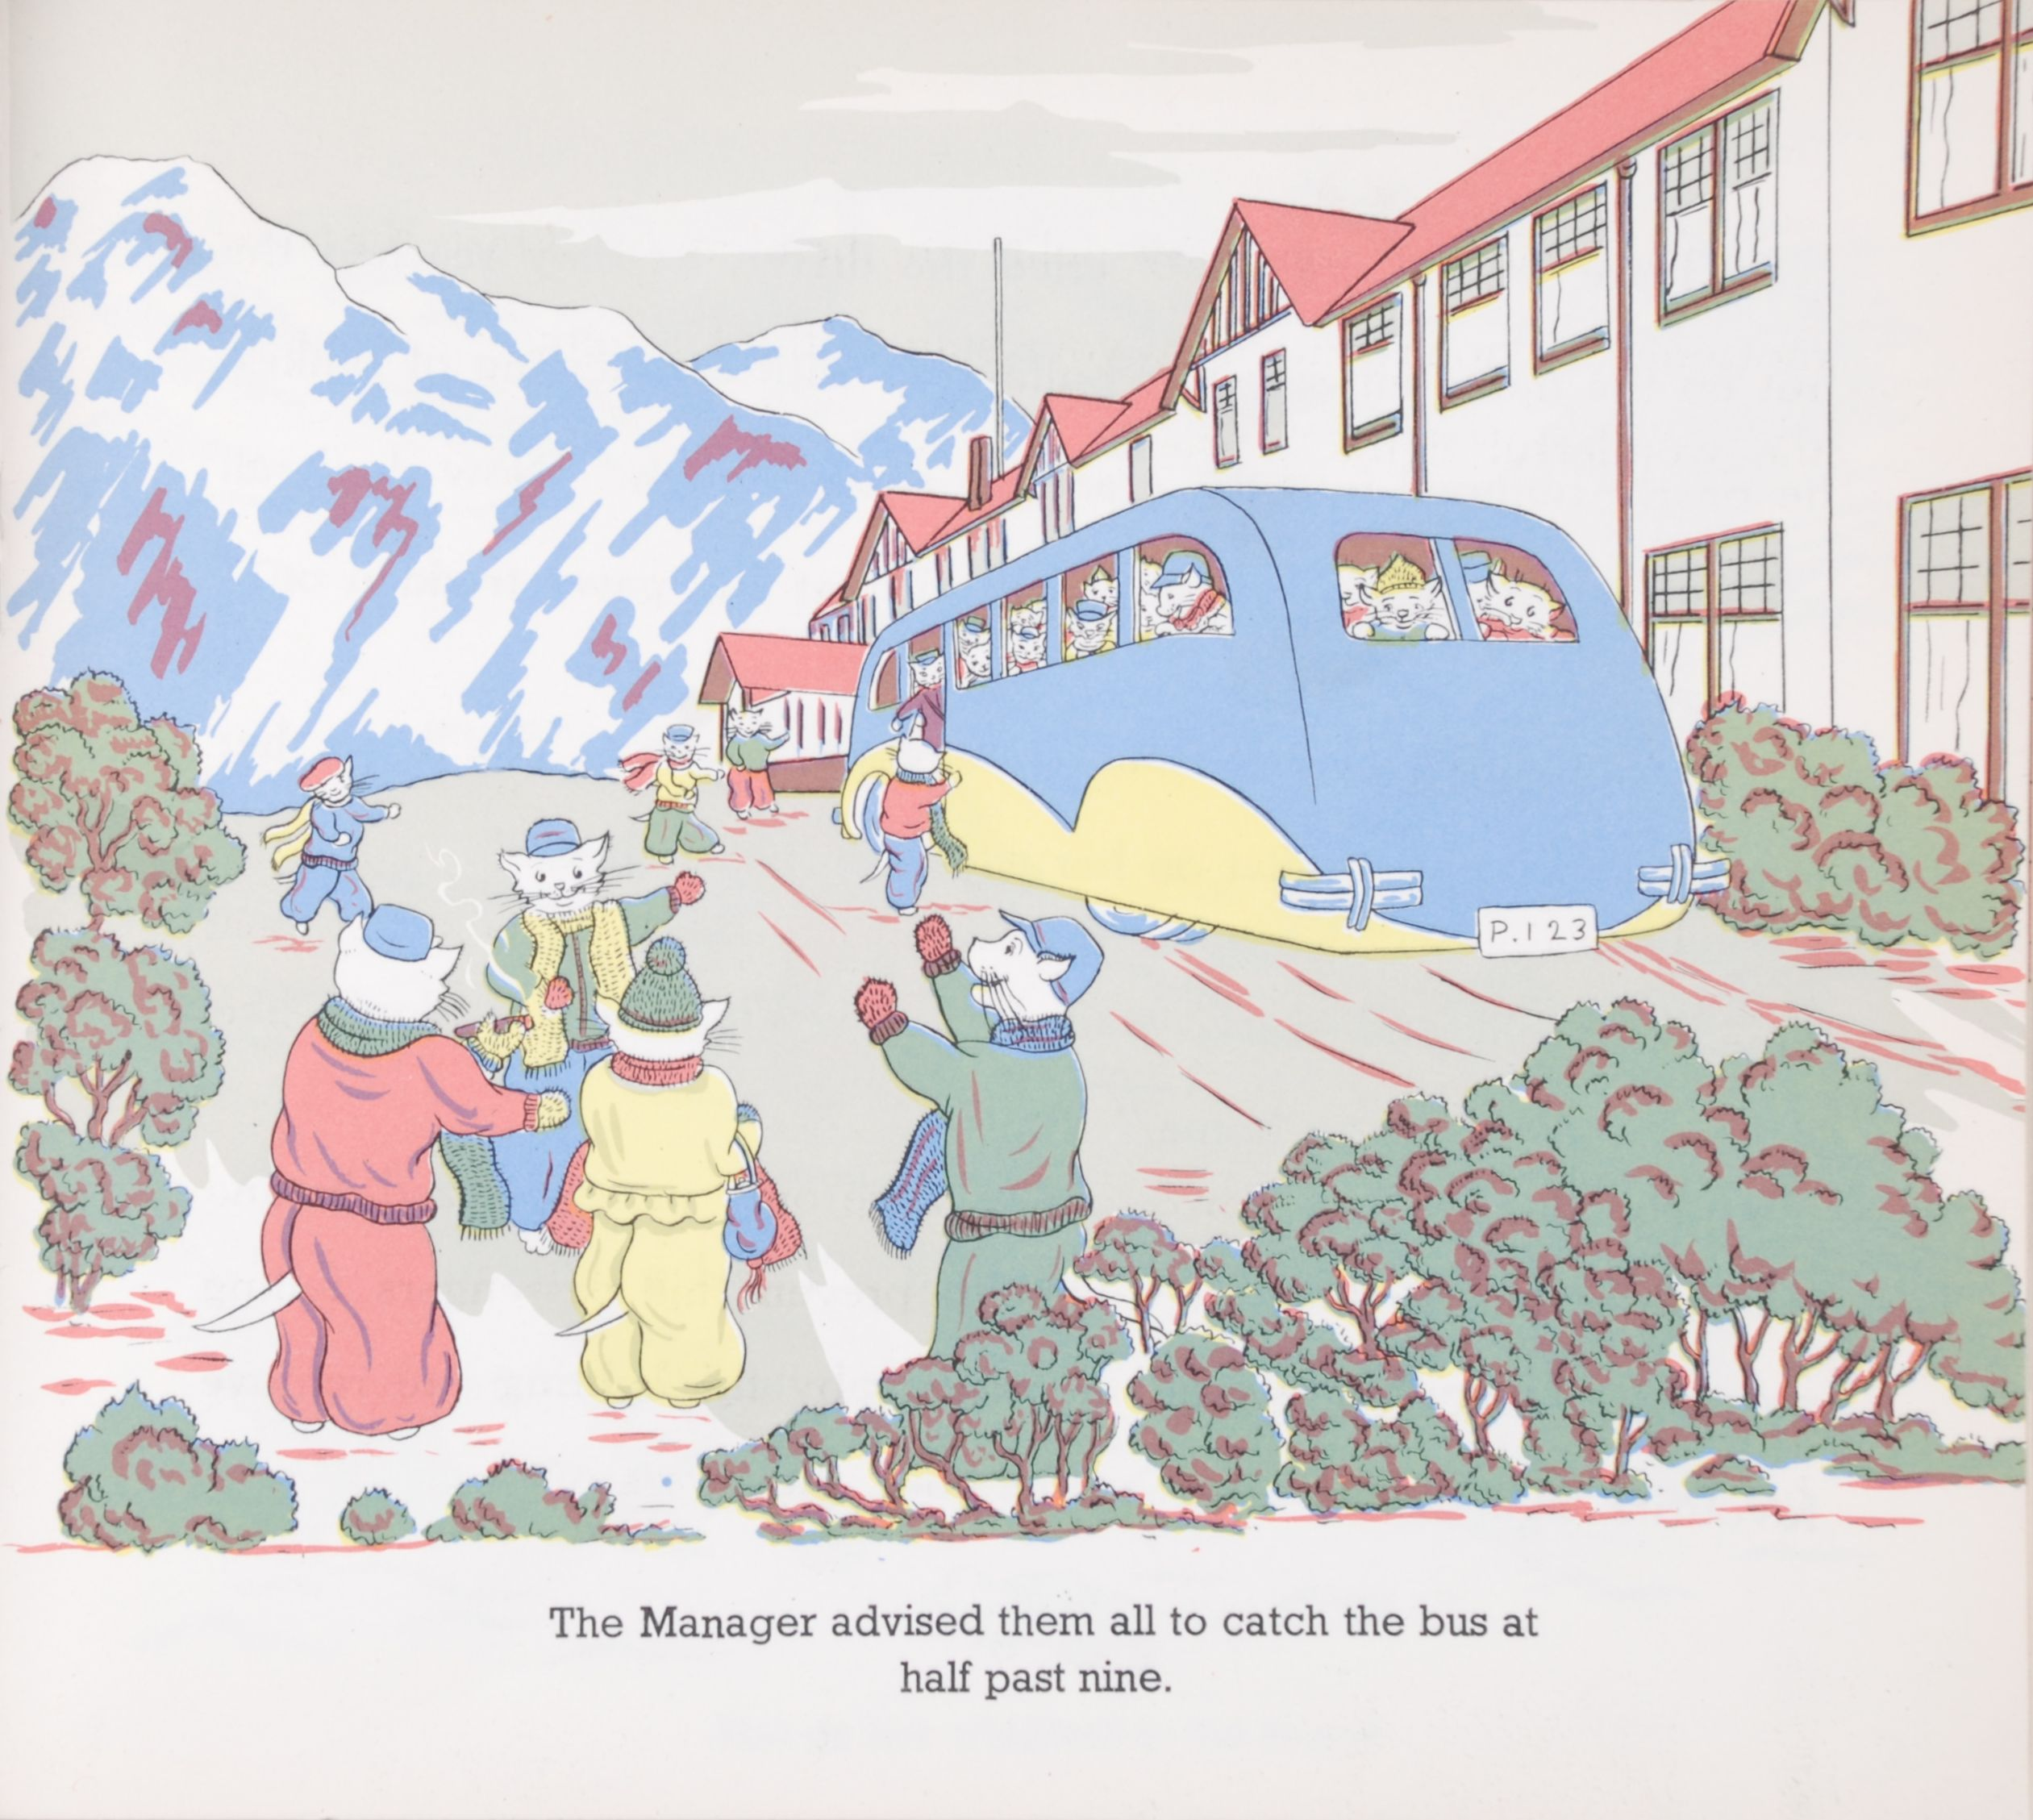 Yvonne Adams. George and Albert Snowywhiskers visit the Southern Alps. Hastings, N.Z.: Pictorial Publications, [1952].